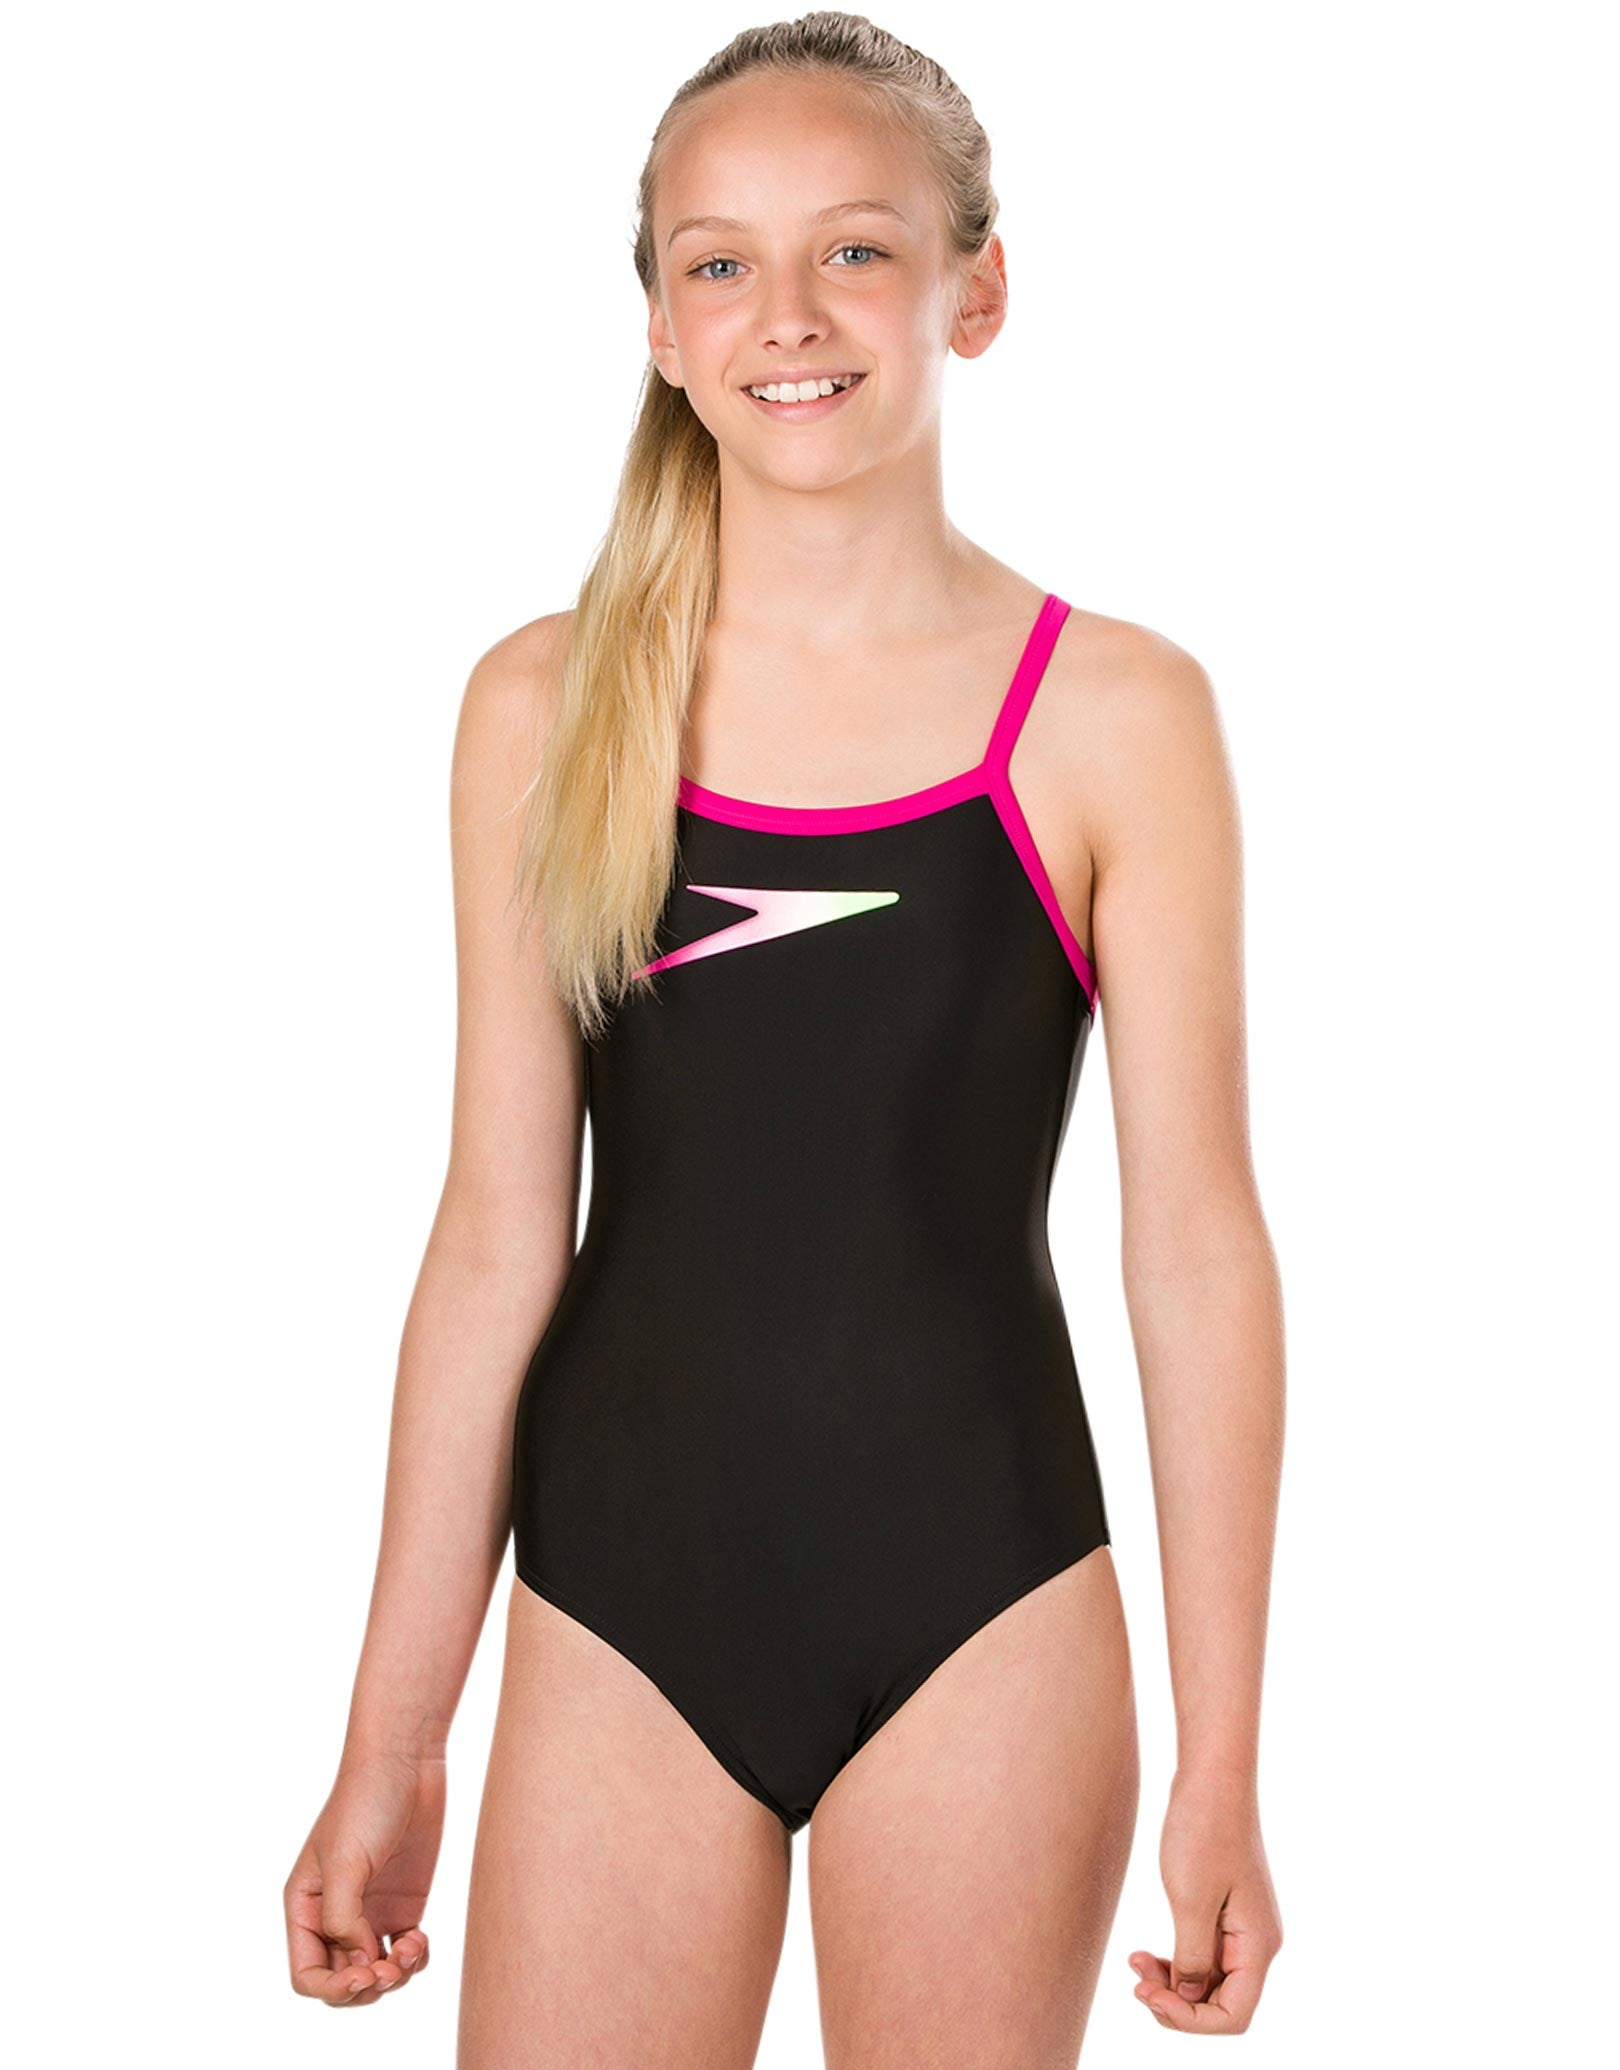 71a01e4f8db23 Girls Endurance 10 Placement Thinstrap Muscleback Swimsuit - Black and Pink